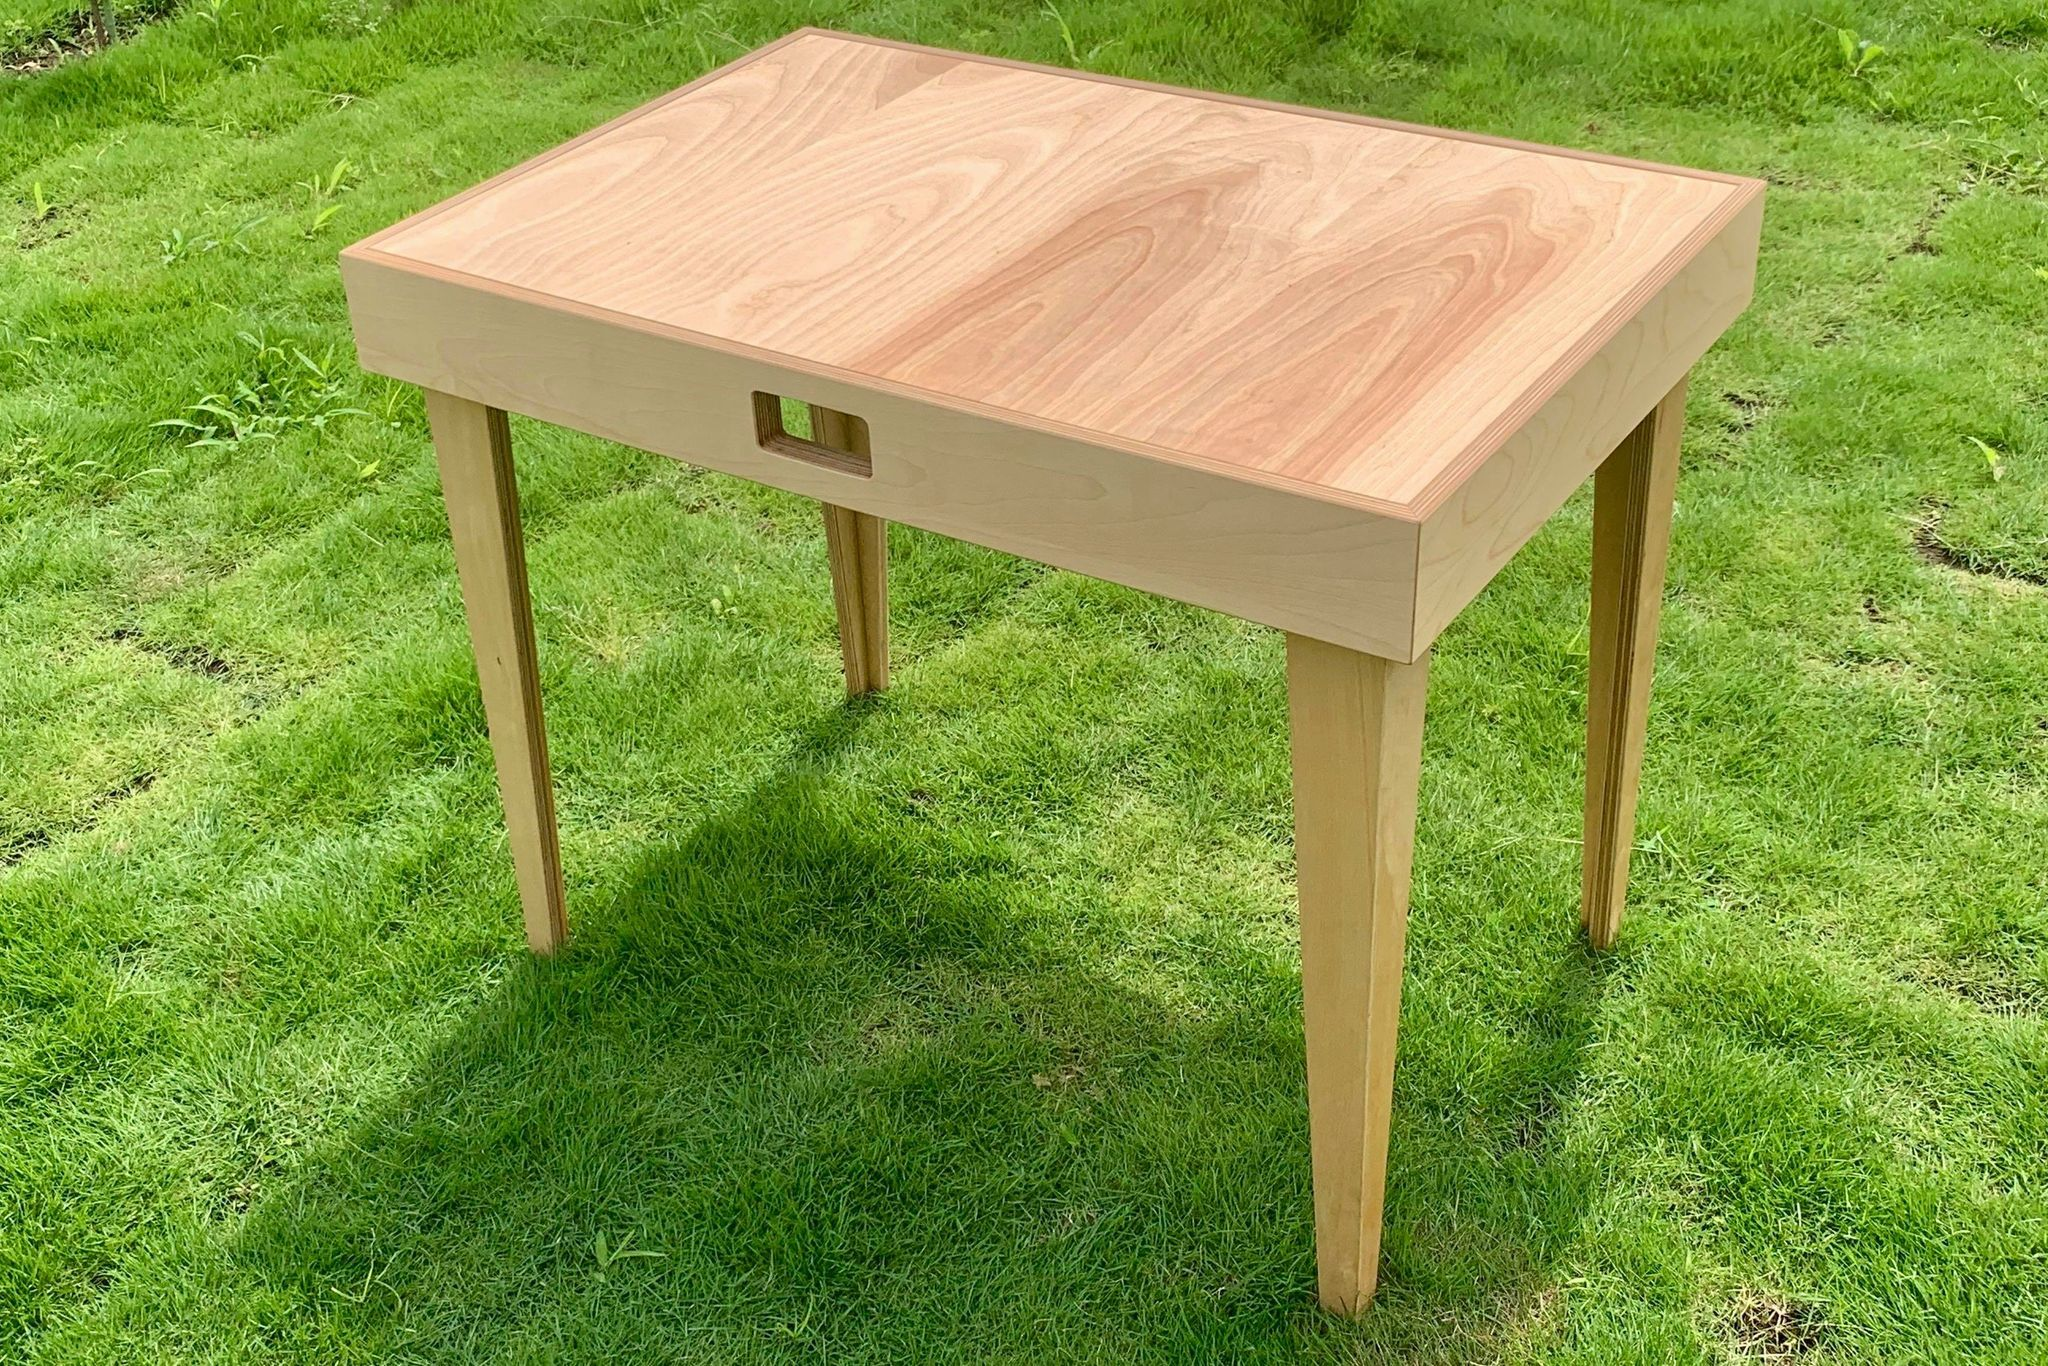 【年度テーマ】obon table / Table for the Blind by the Blind